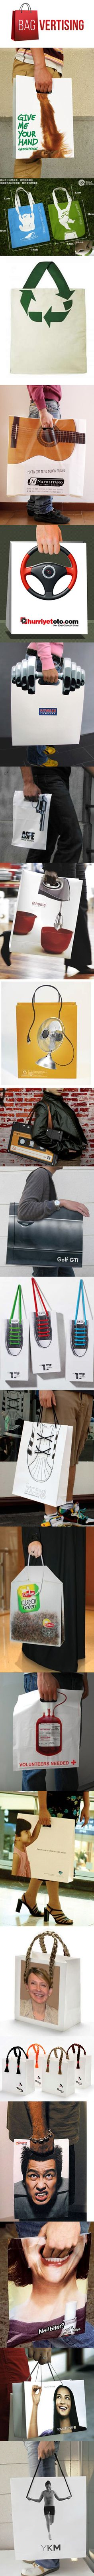 Idées originales pour habiller vos packaging le BAGVERTISING ! #streetmarketing #m2mediascom